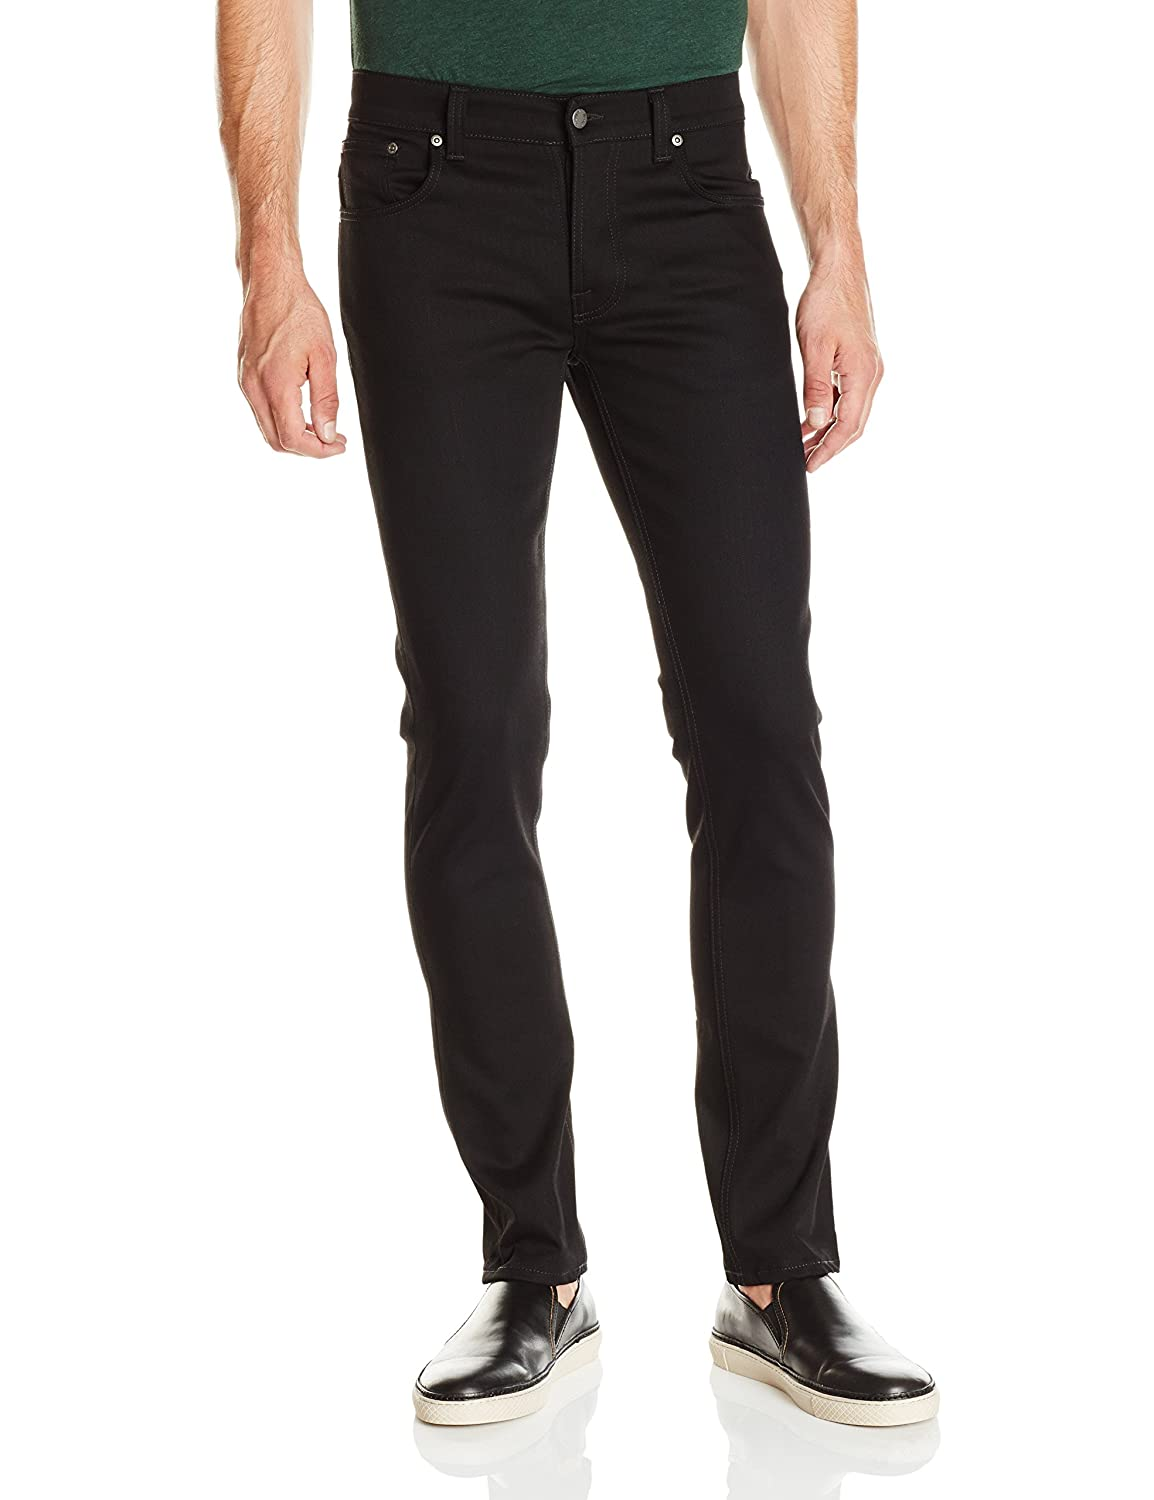 Nudie Jeans at Amazon.com